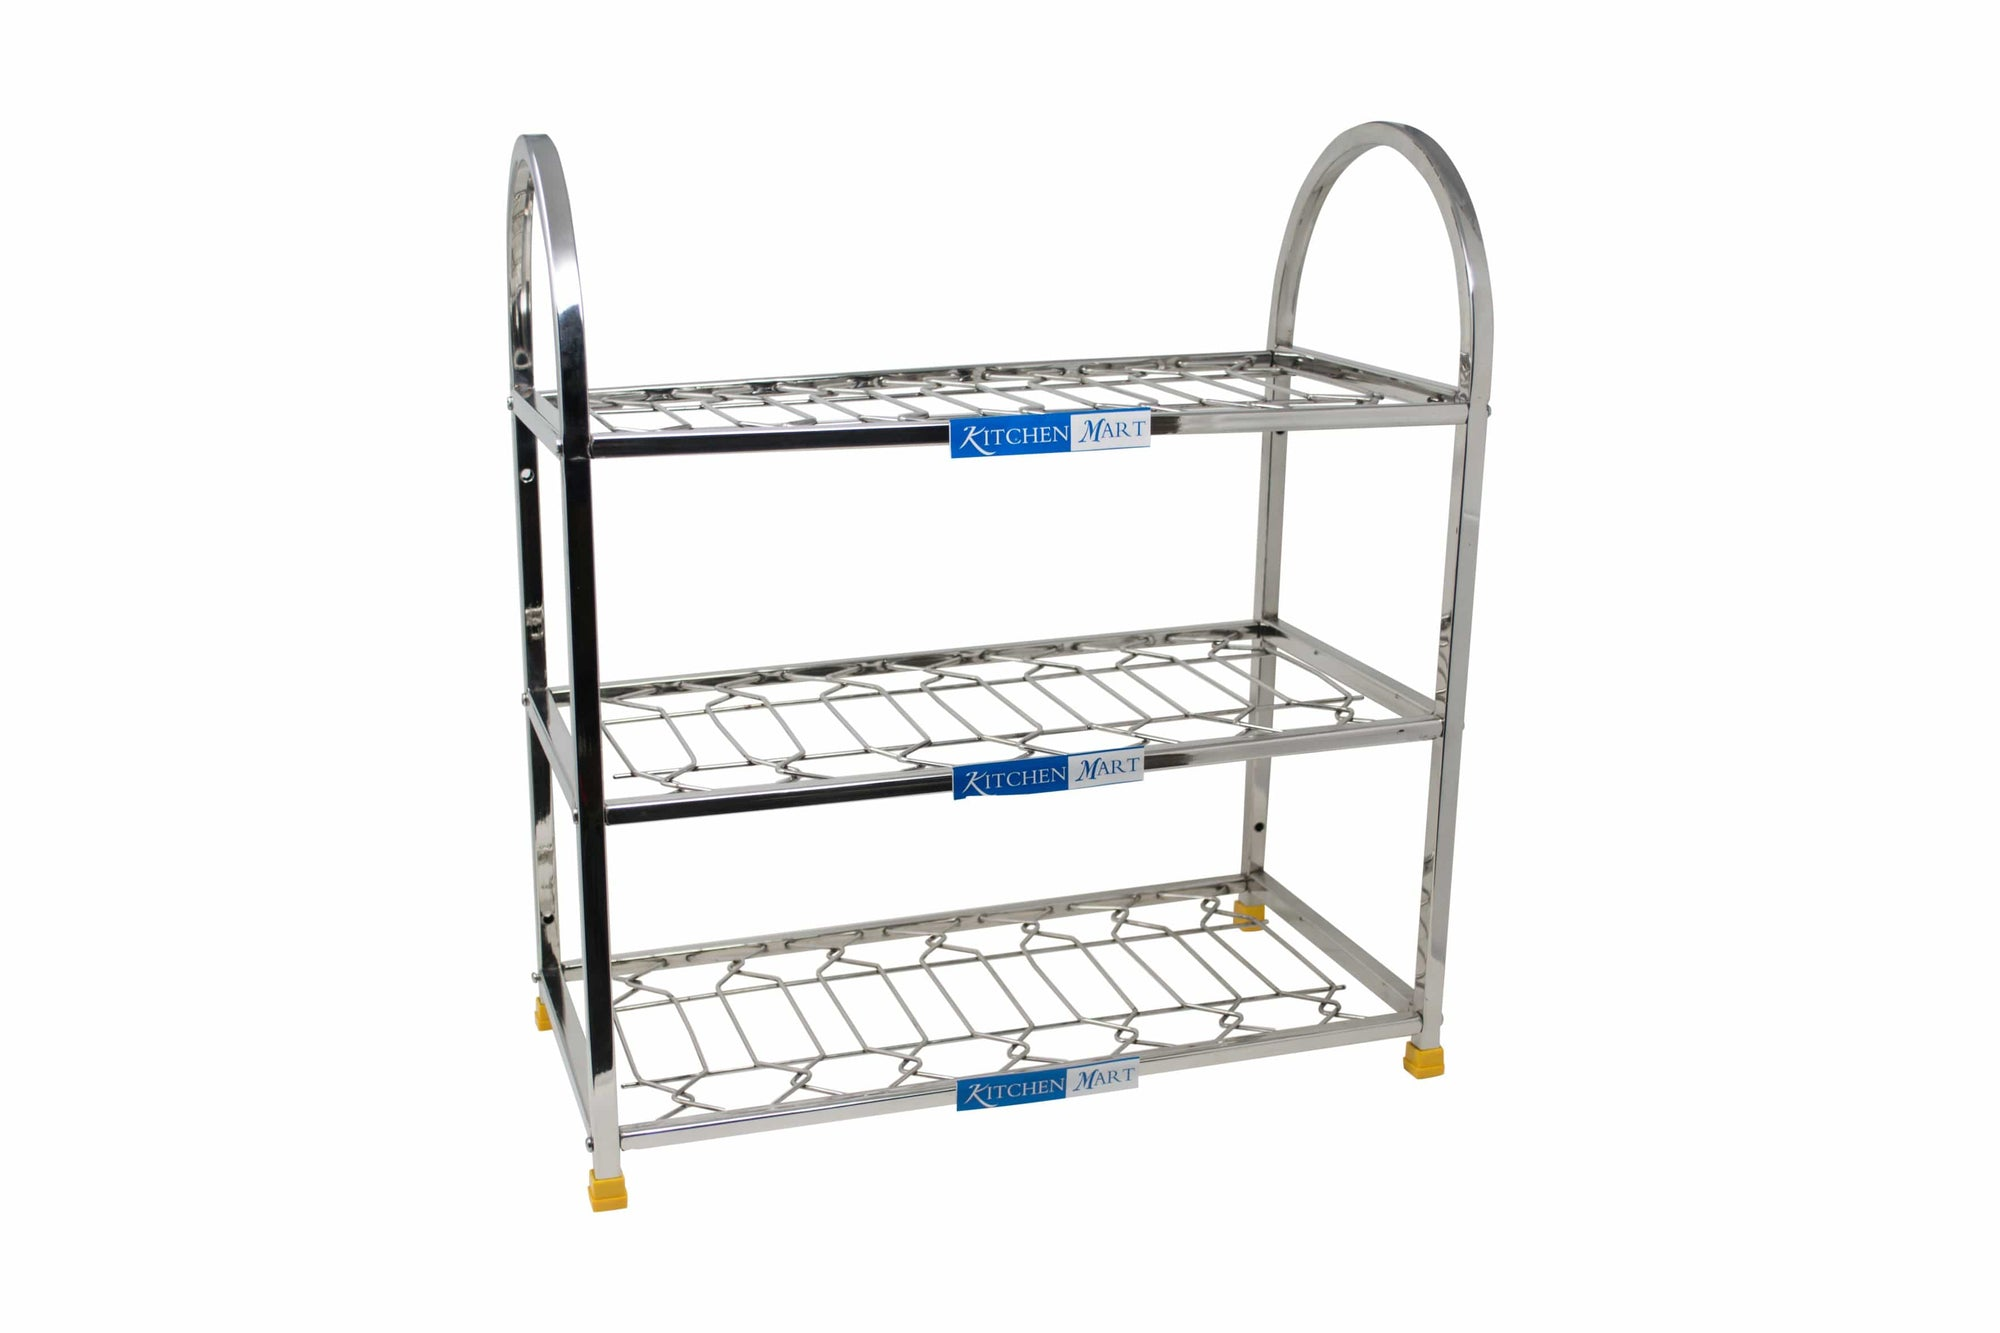 Kitchen Mart Stainless Steel shoe rack / Kitchen Storage shelf rack (18 x 3) - KITCHEN MART